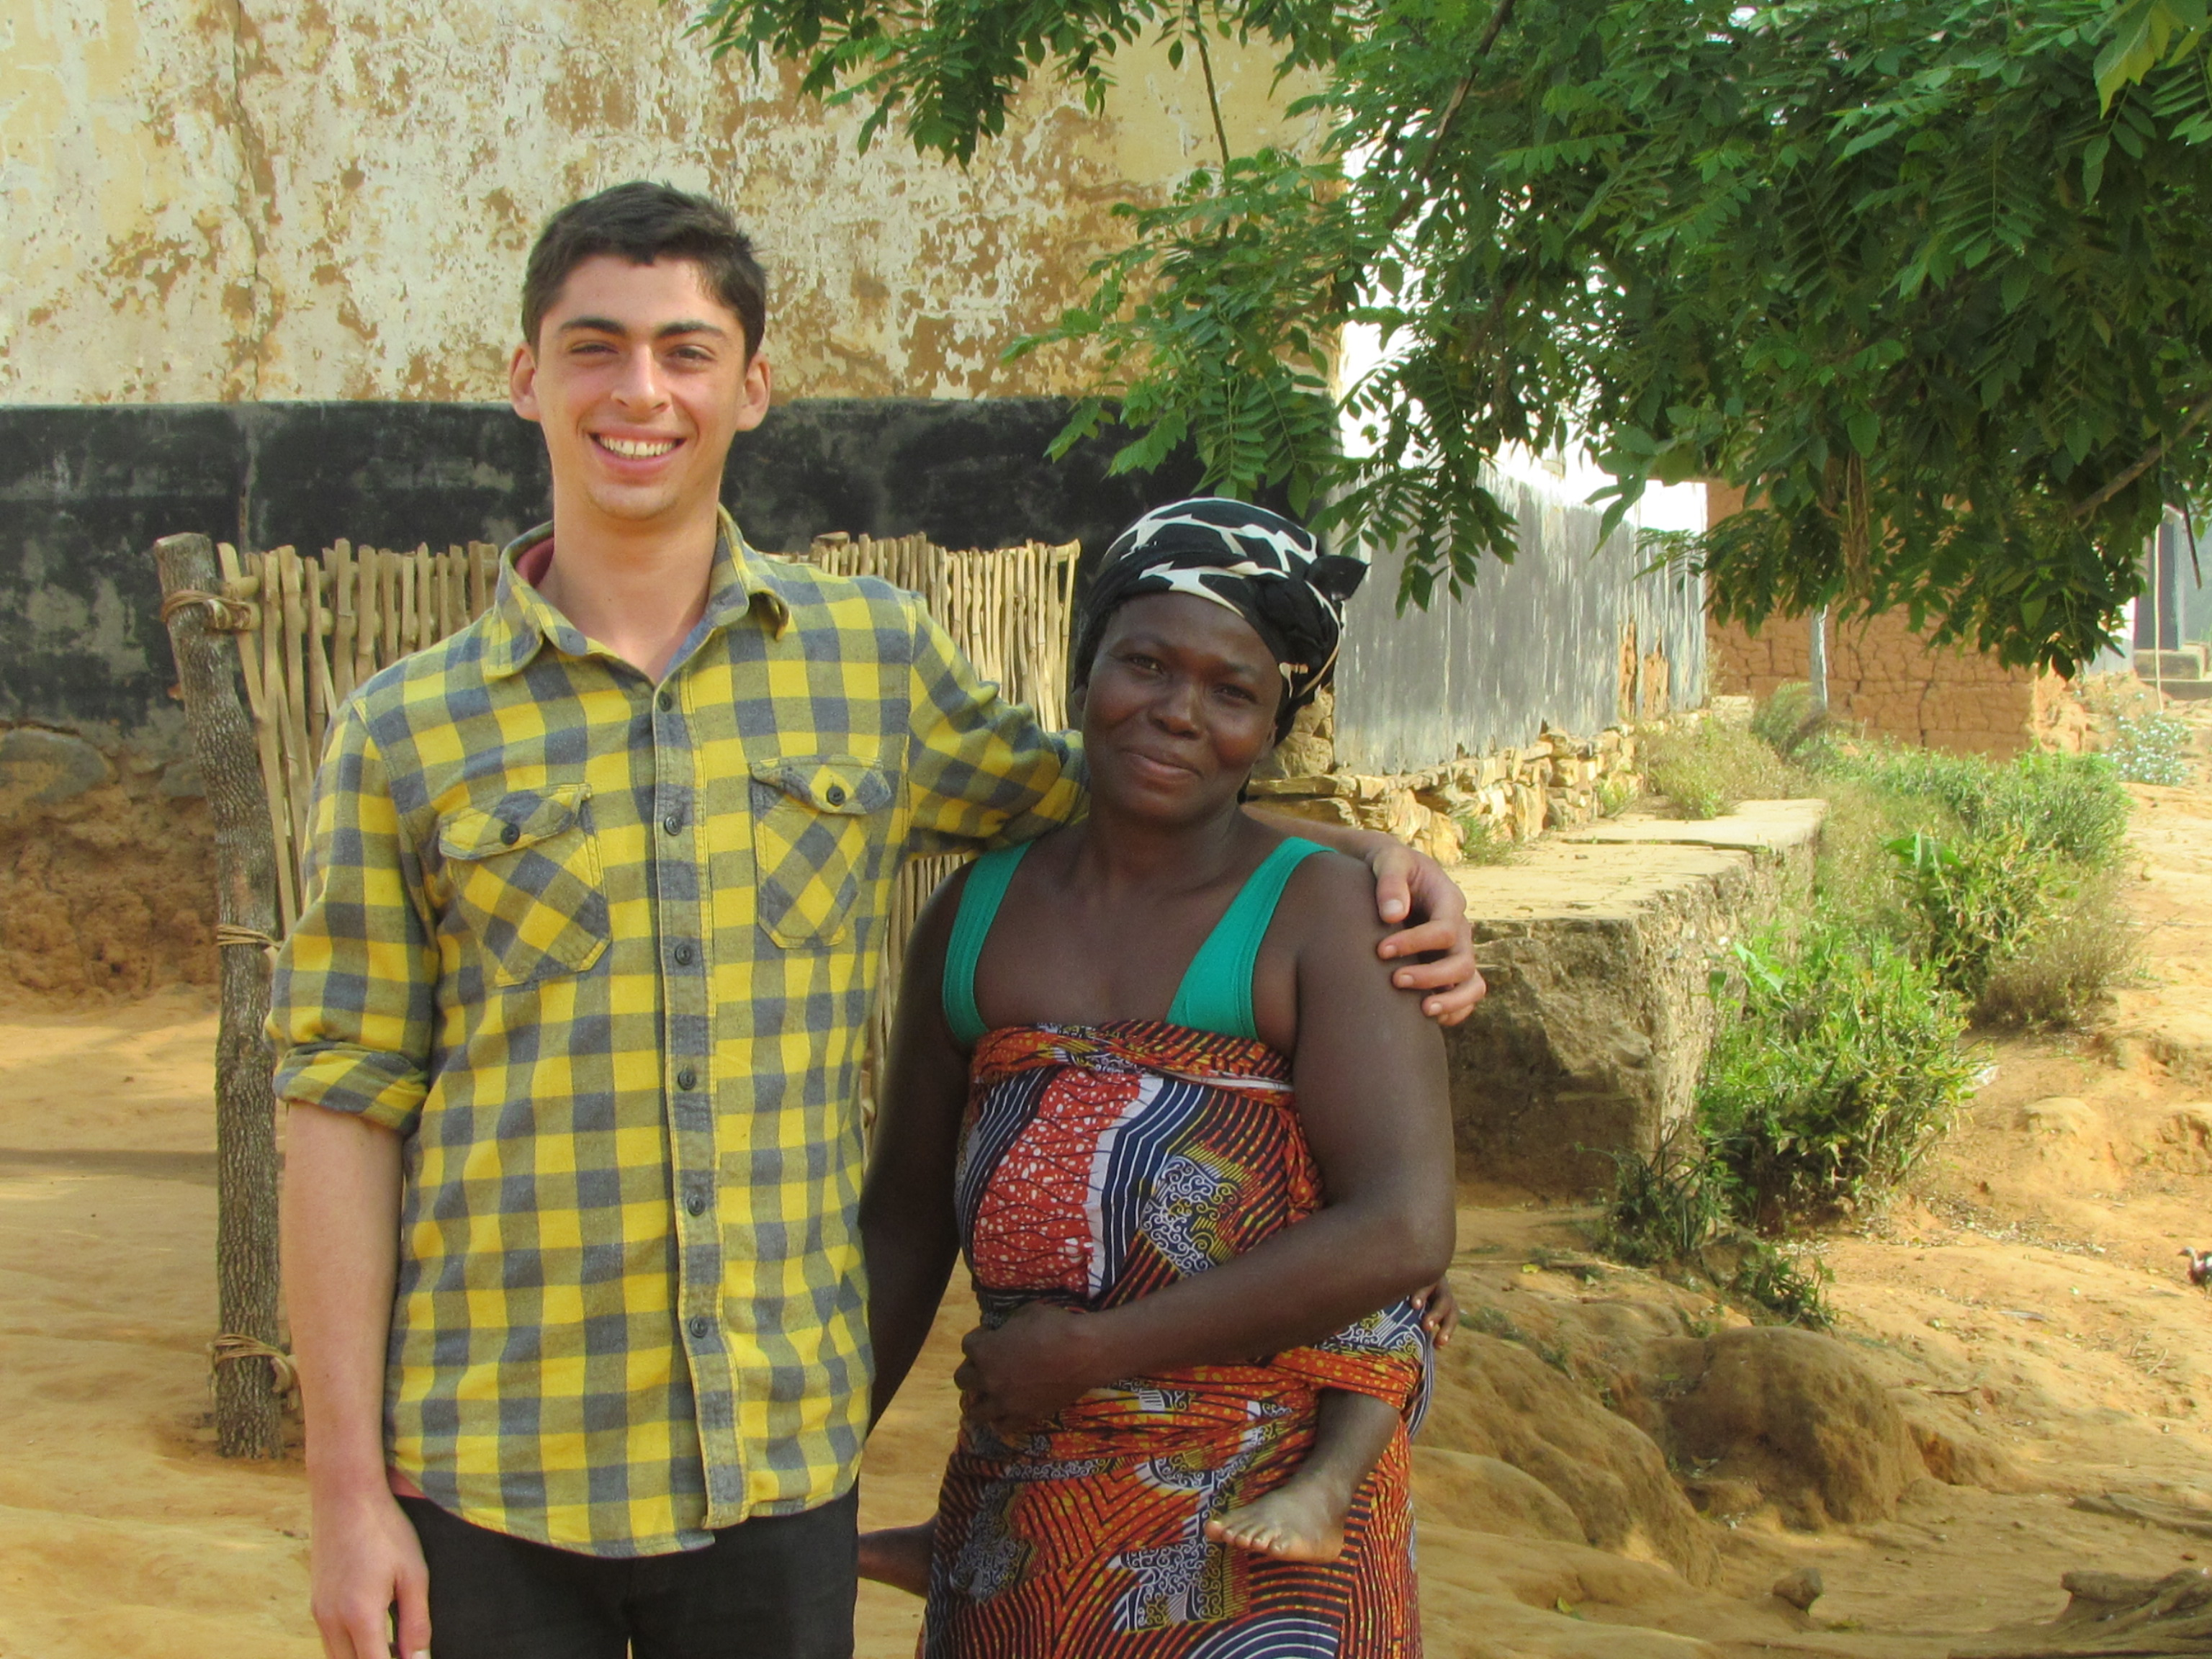 The University of California Education Abroad Program (UC-EAP) featured Jeremy and his work with Rise Up Development Collective, specifically with the Wli Todzi Eco-tourism project, in a brochure published recently....